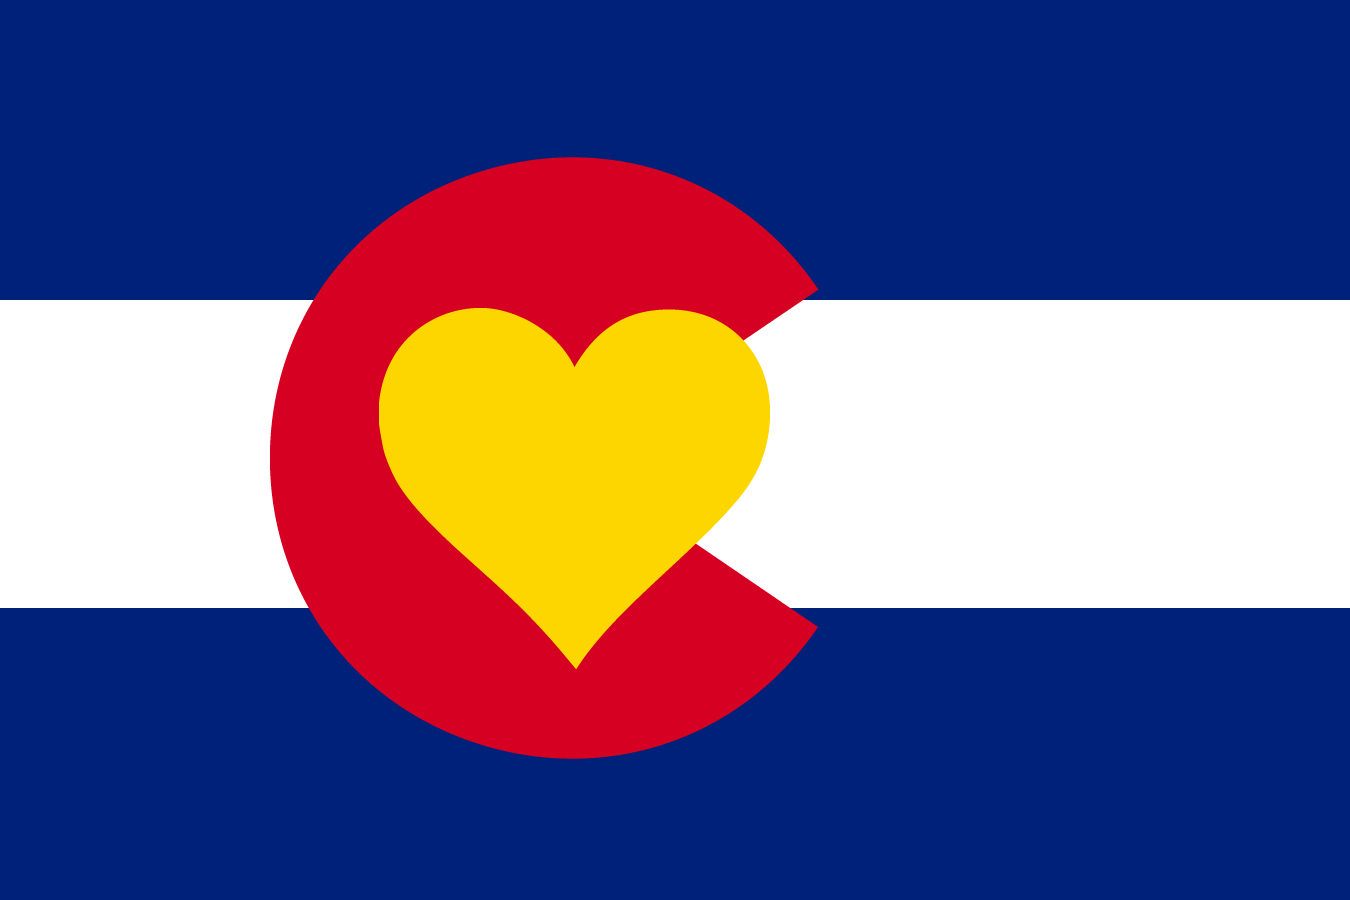 Colorado Flag With Heart colorado love flag - it's new and different ...